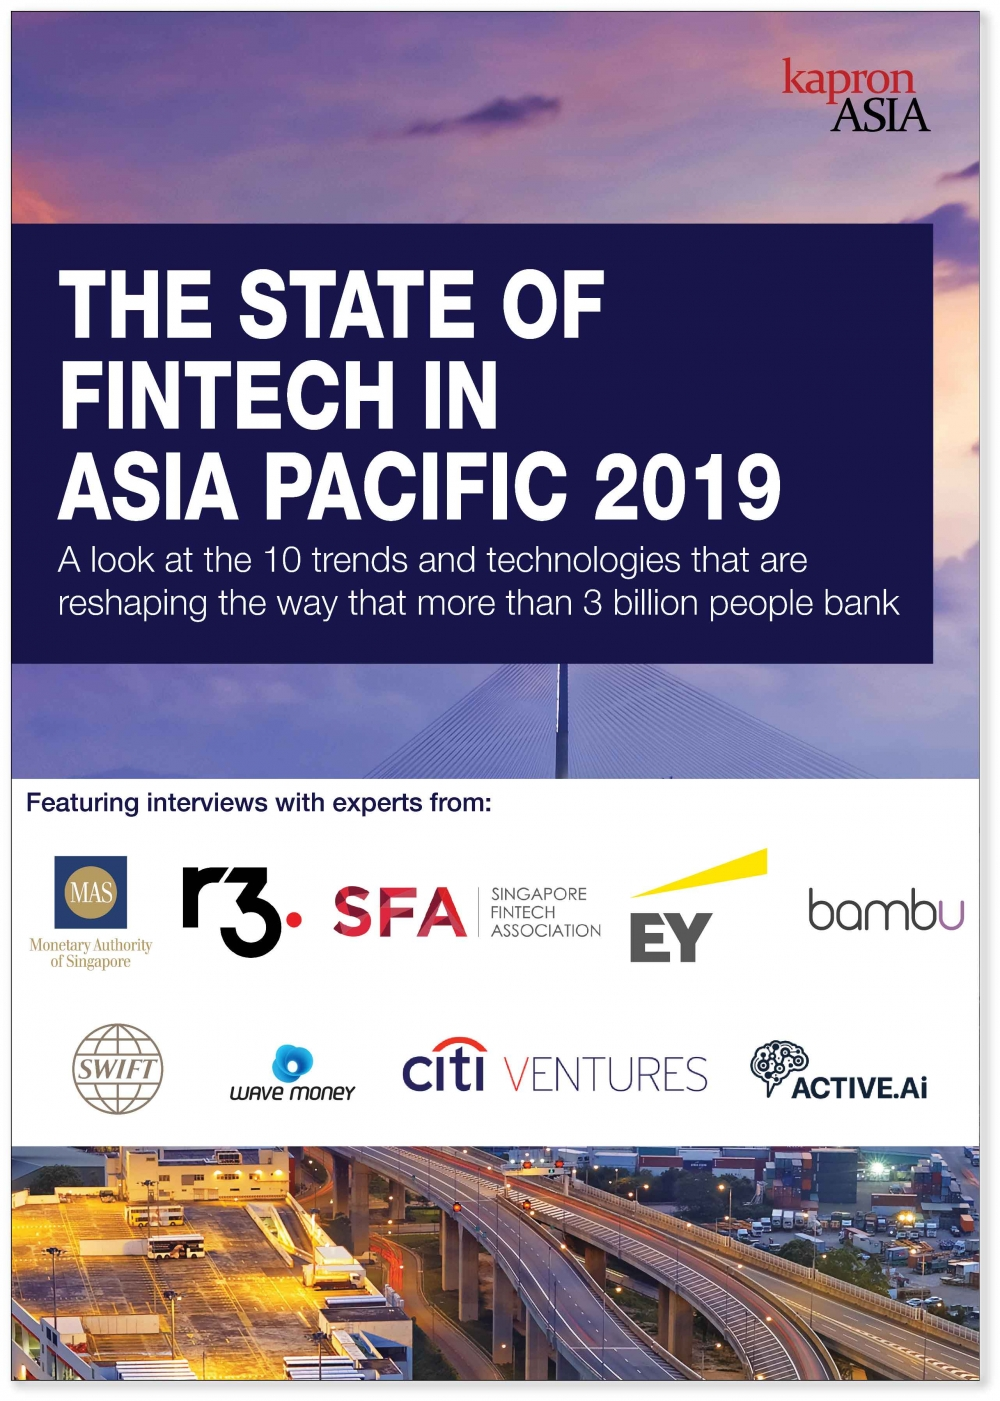 The State of Fintech in Asia Pacific 2019